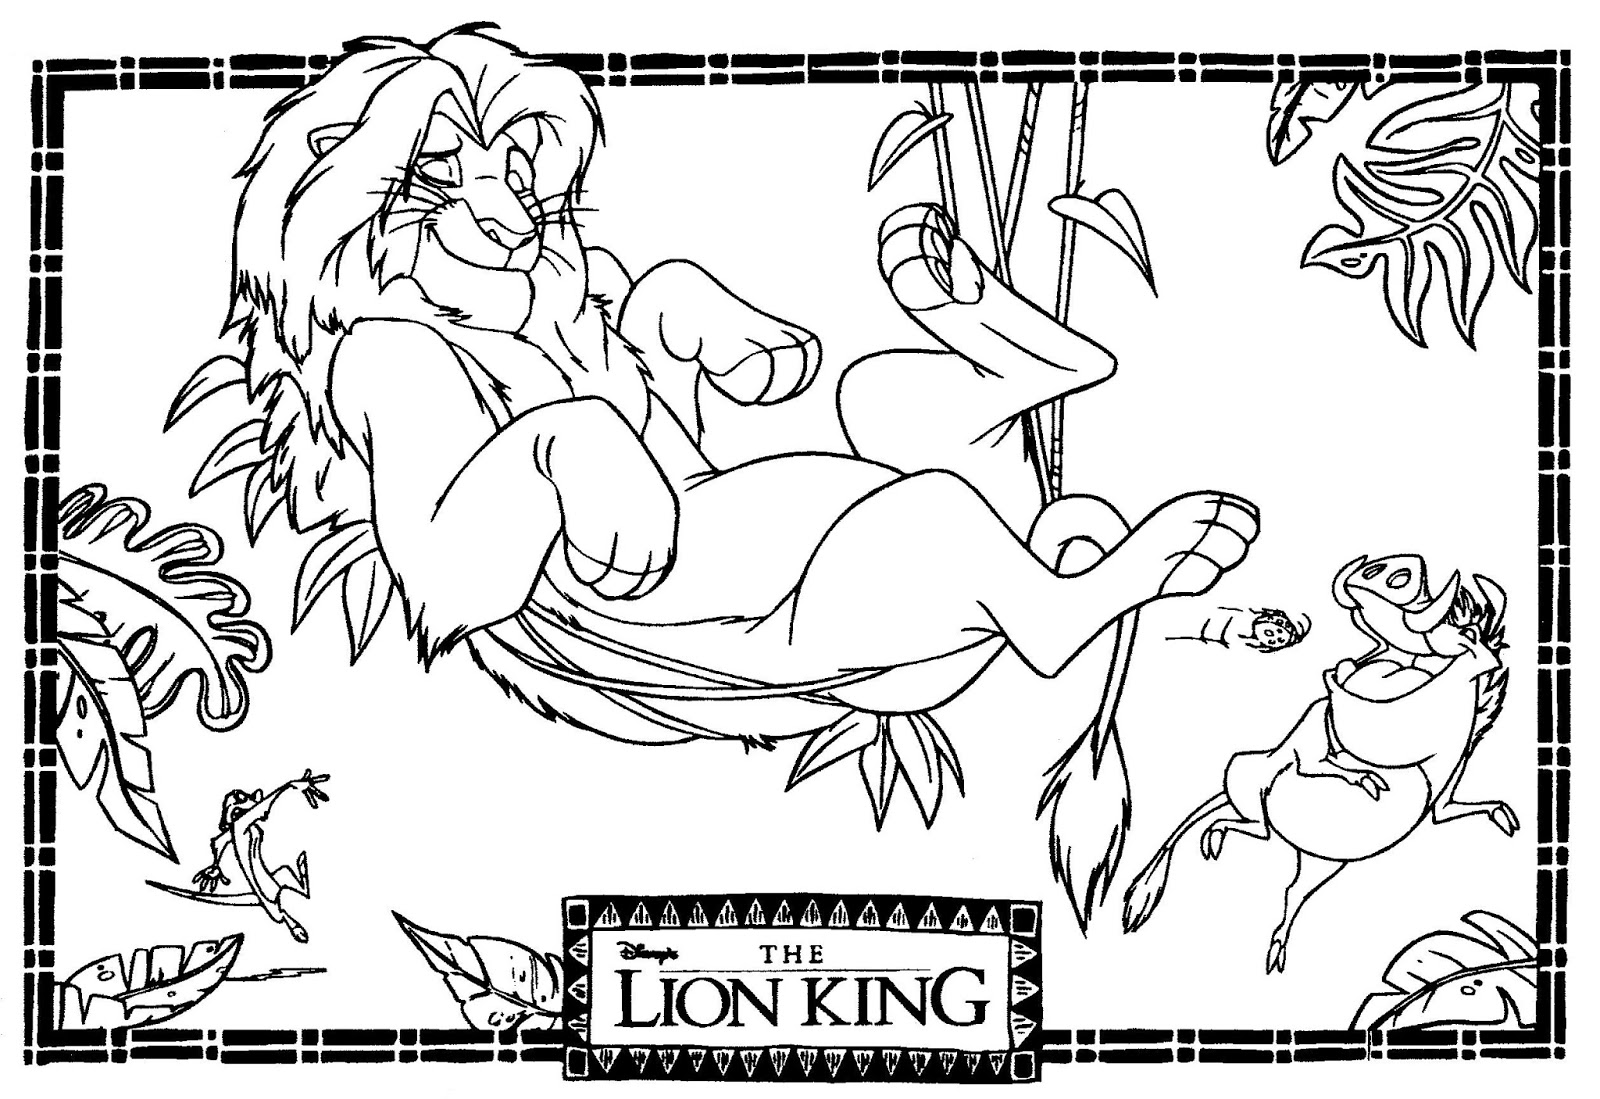 coloring the lion king coloring page the lion king coloring pages 10 coloring lion king the